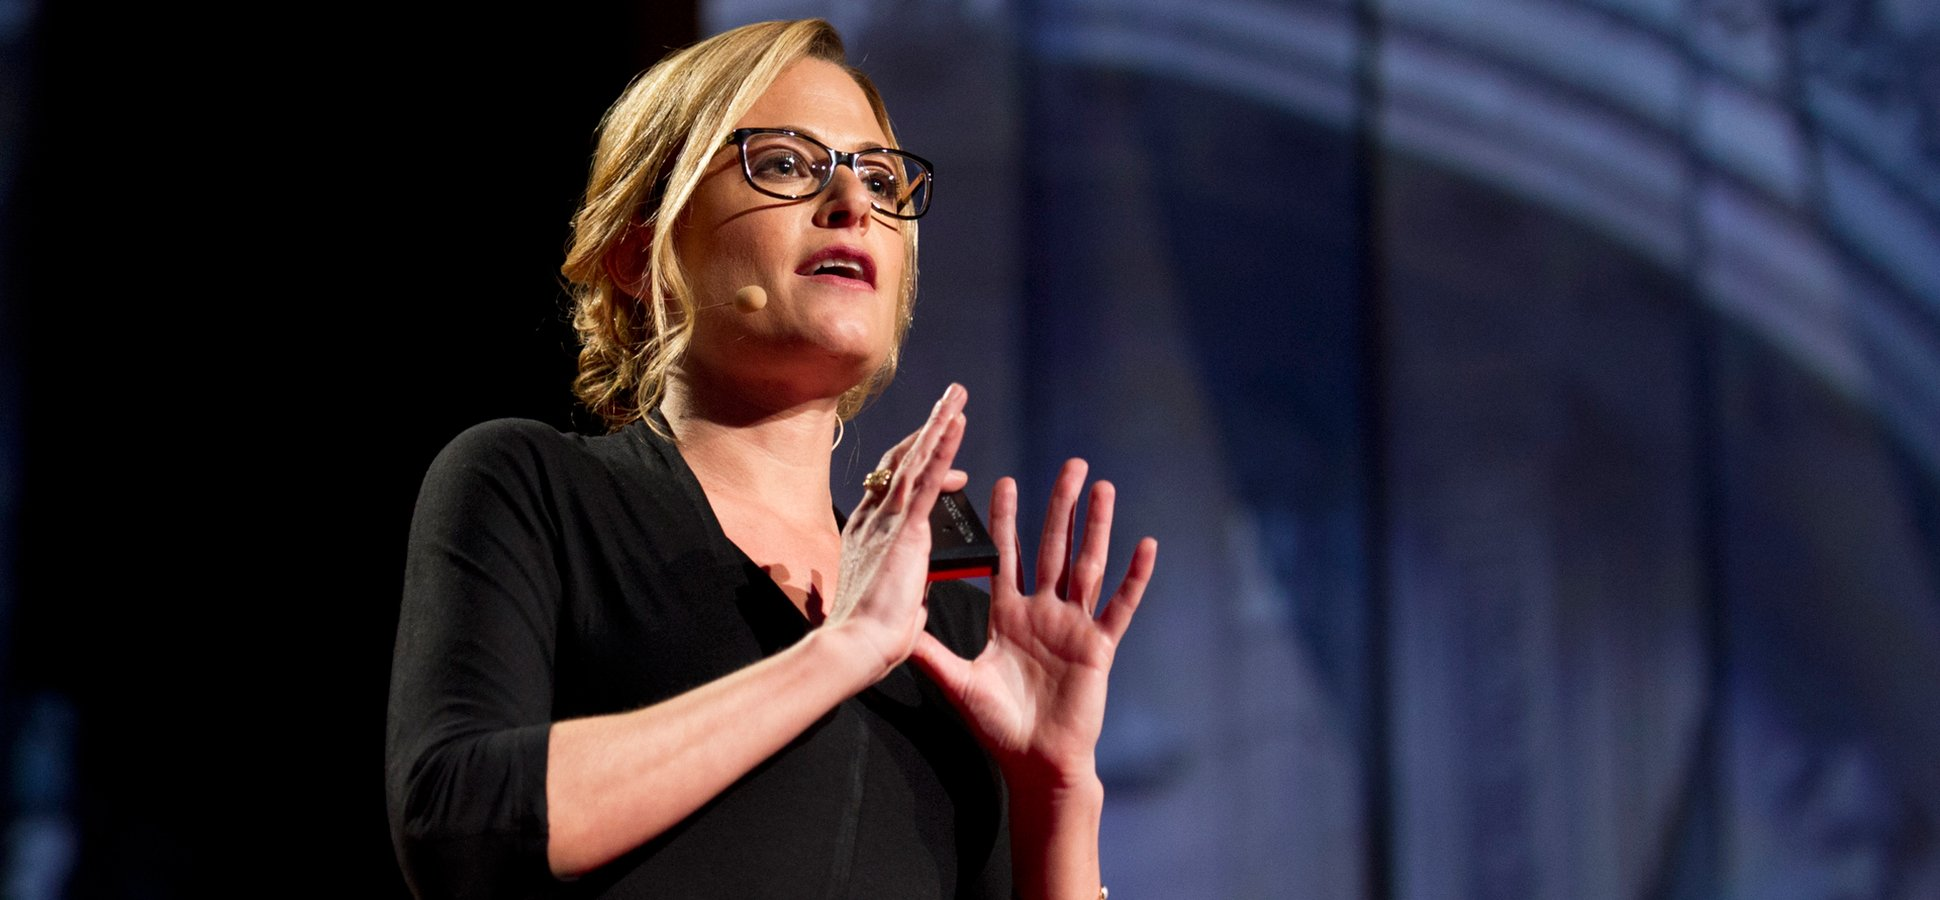 5 TED Talks That Are an Instant Dose of Optimism